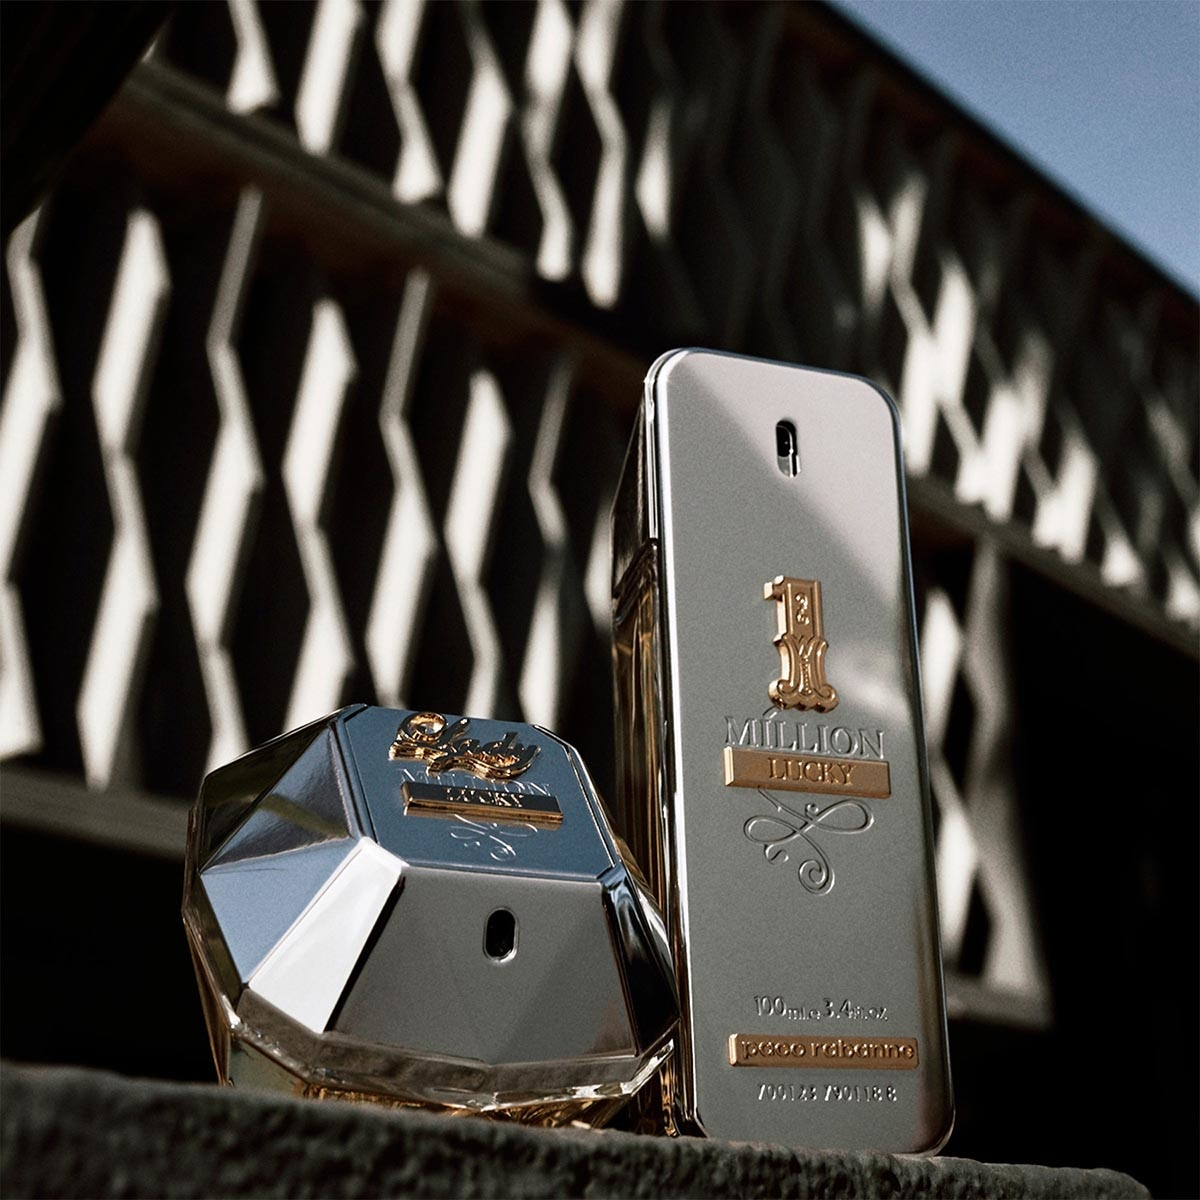 FRAGANCIA PARA CABALLERO, PACO RABANNE, ONE MILLION LUCKY, EAU DE TOILETTE